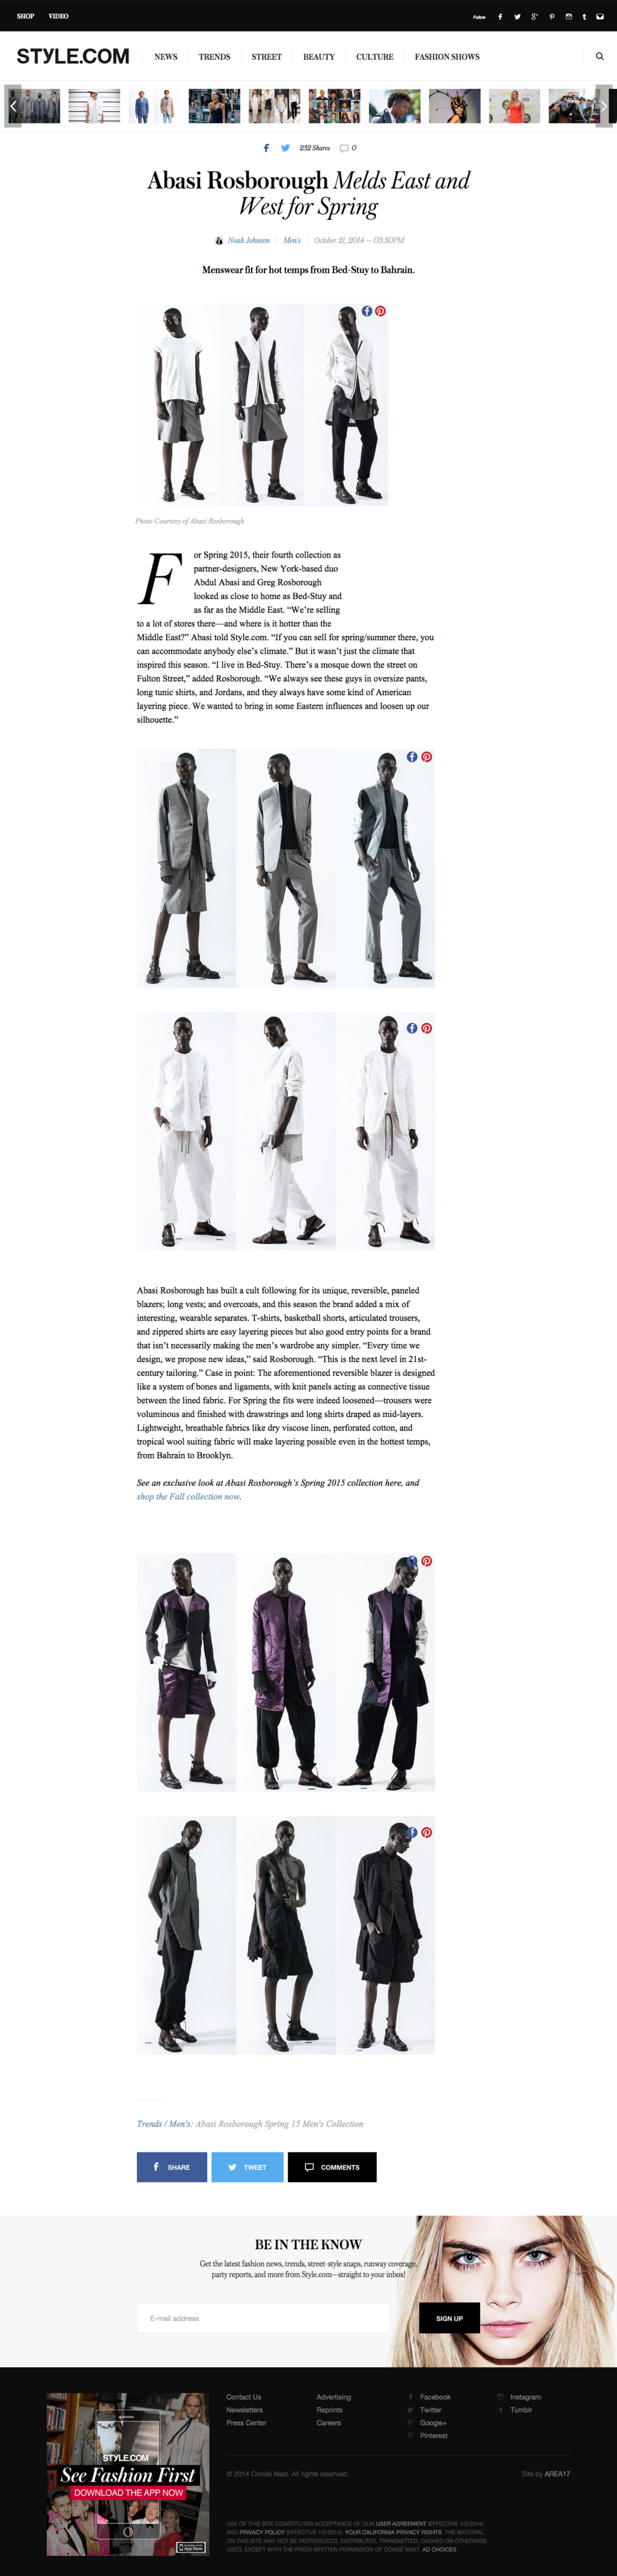 ABASI ROSBOROUGH STYLE.COM NEW YORK 2.png